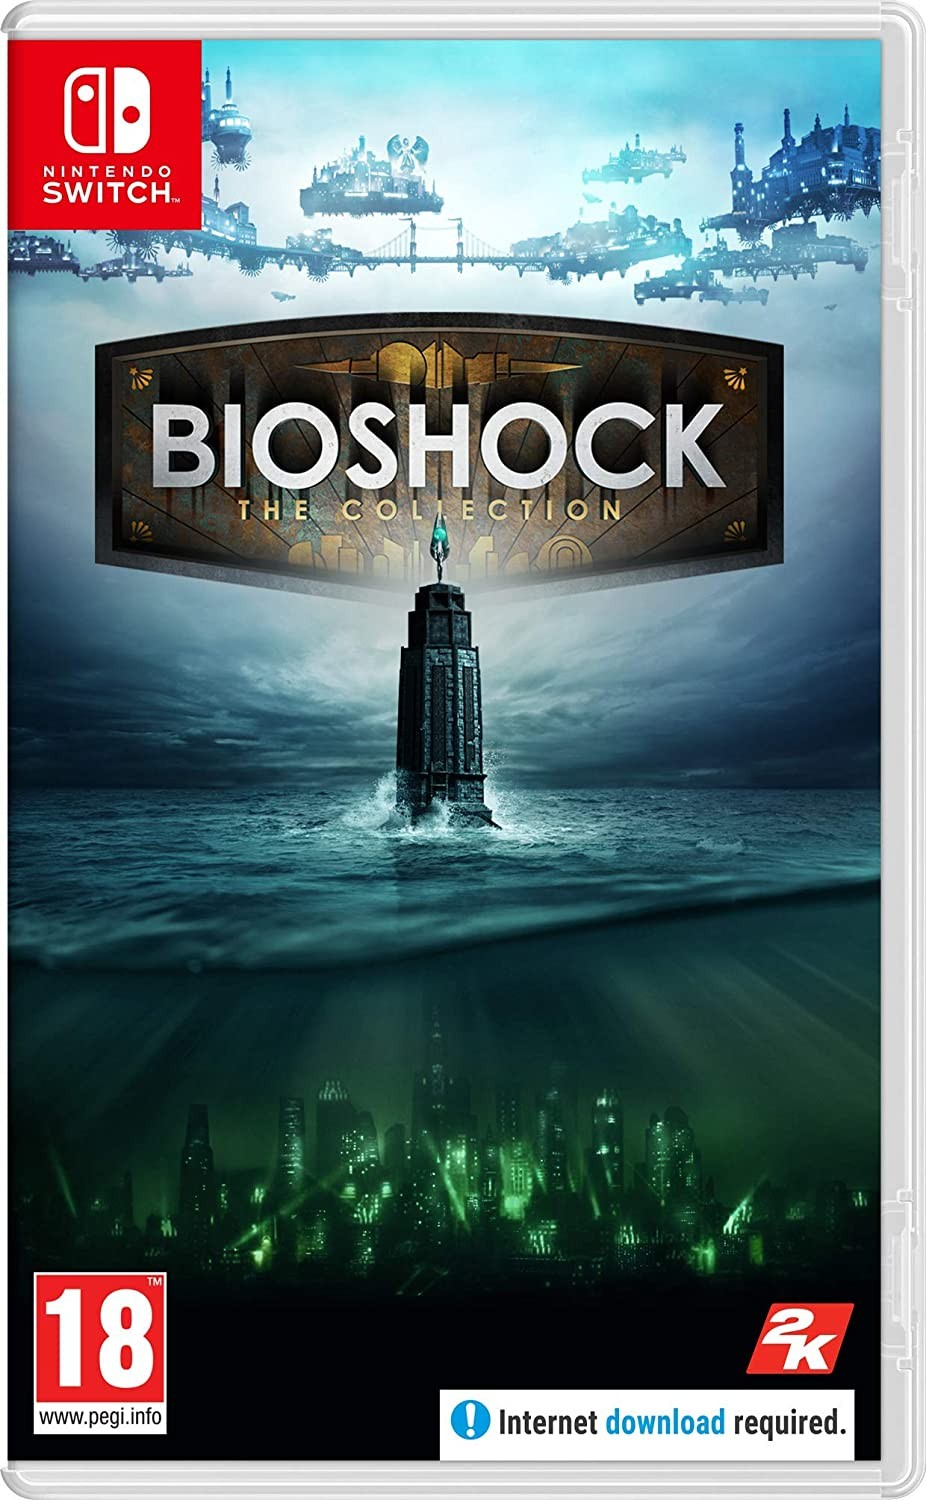 BioShock The Collection | Біошок Колекція SWITCH